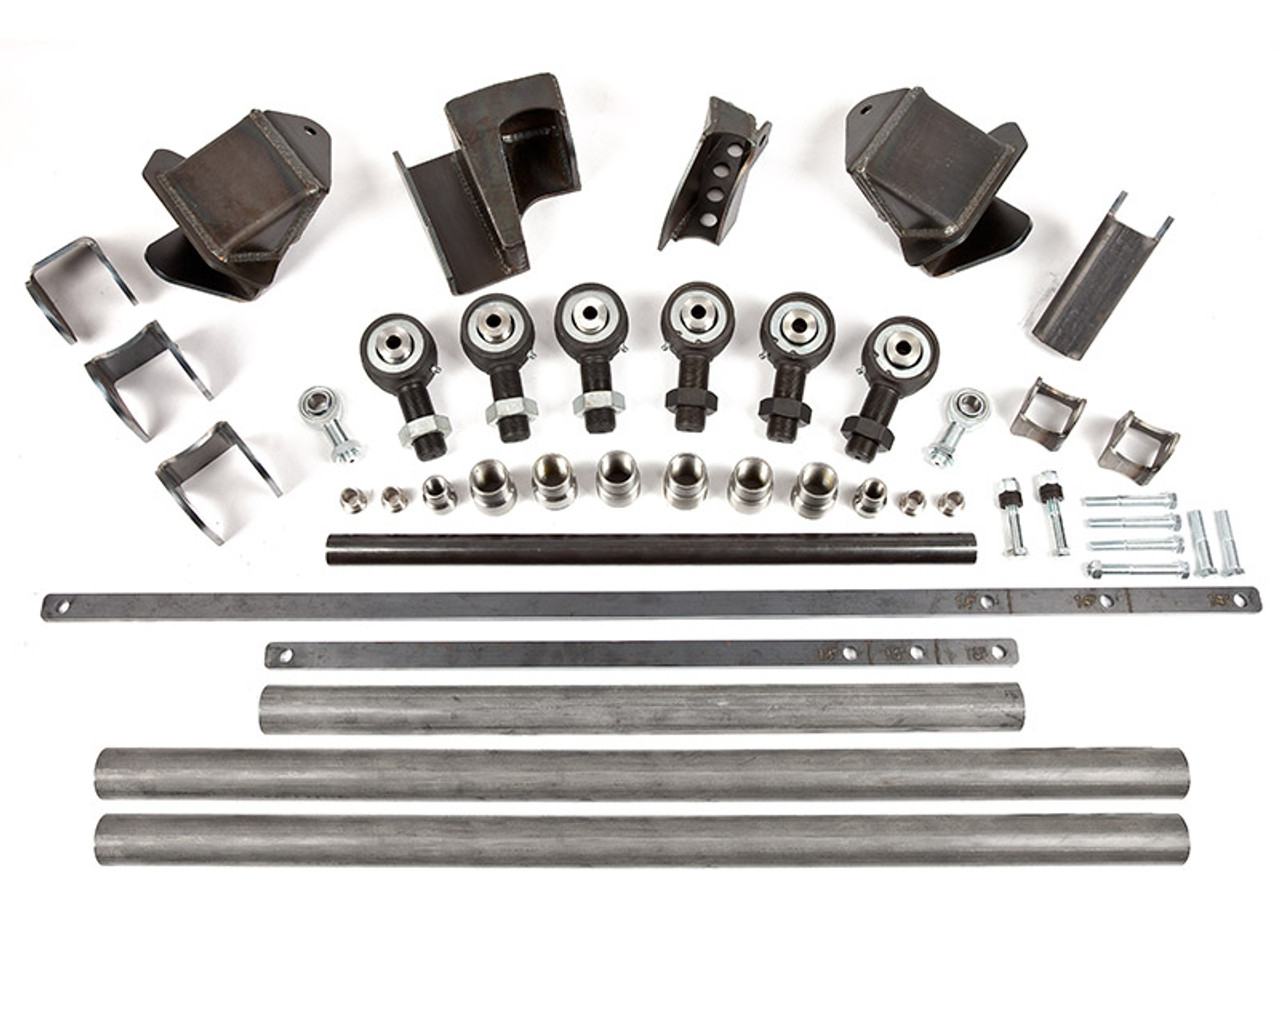 Trail-Link Three Front 3-Link Kit (Toyota) by: Trail Gear